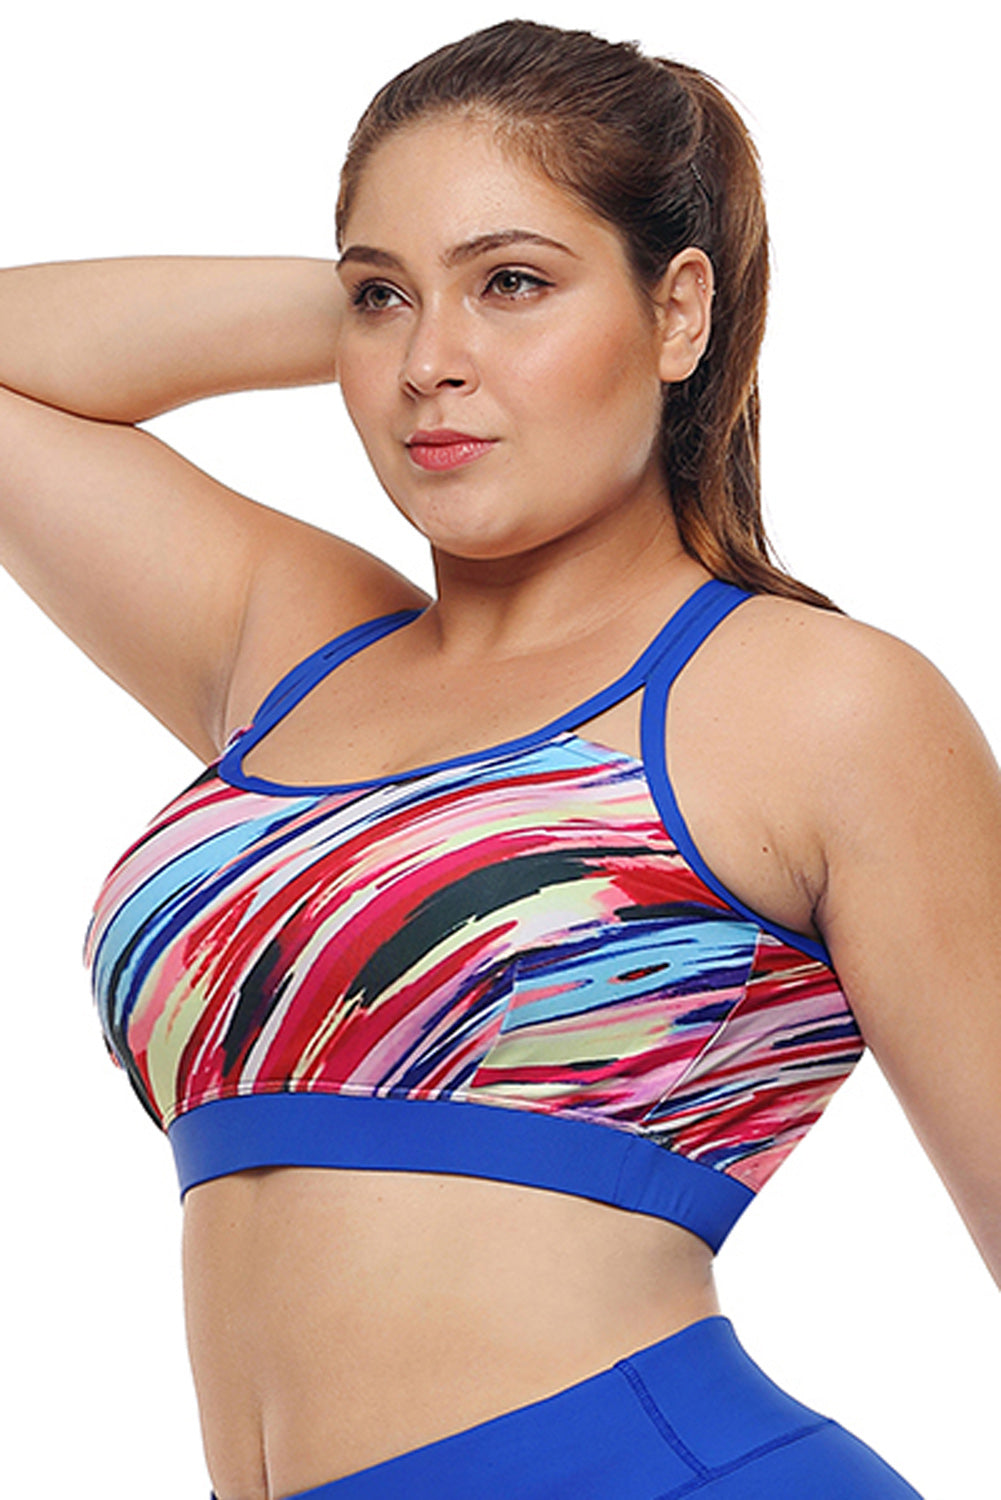 Multicolor Painting Print Sports Bra Top